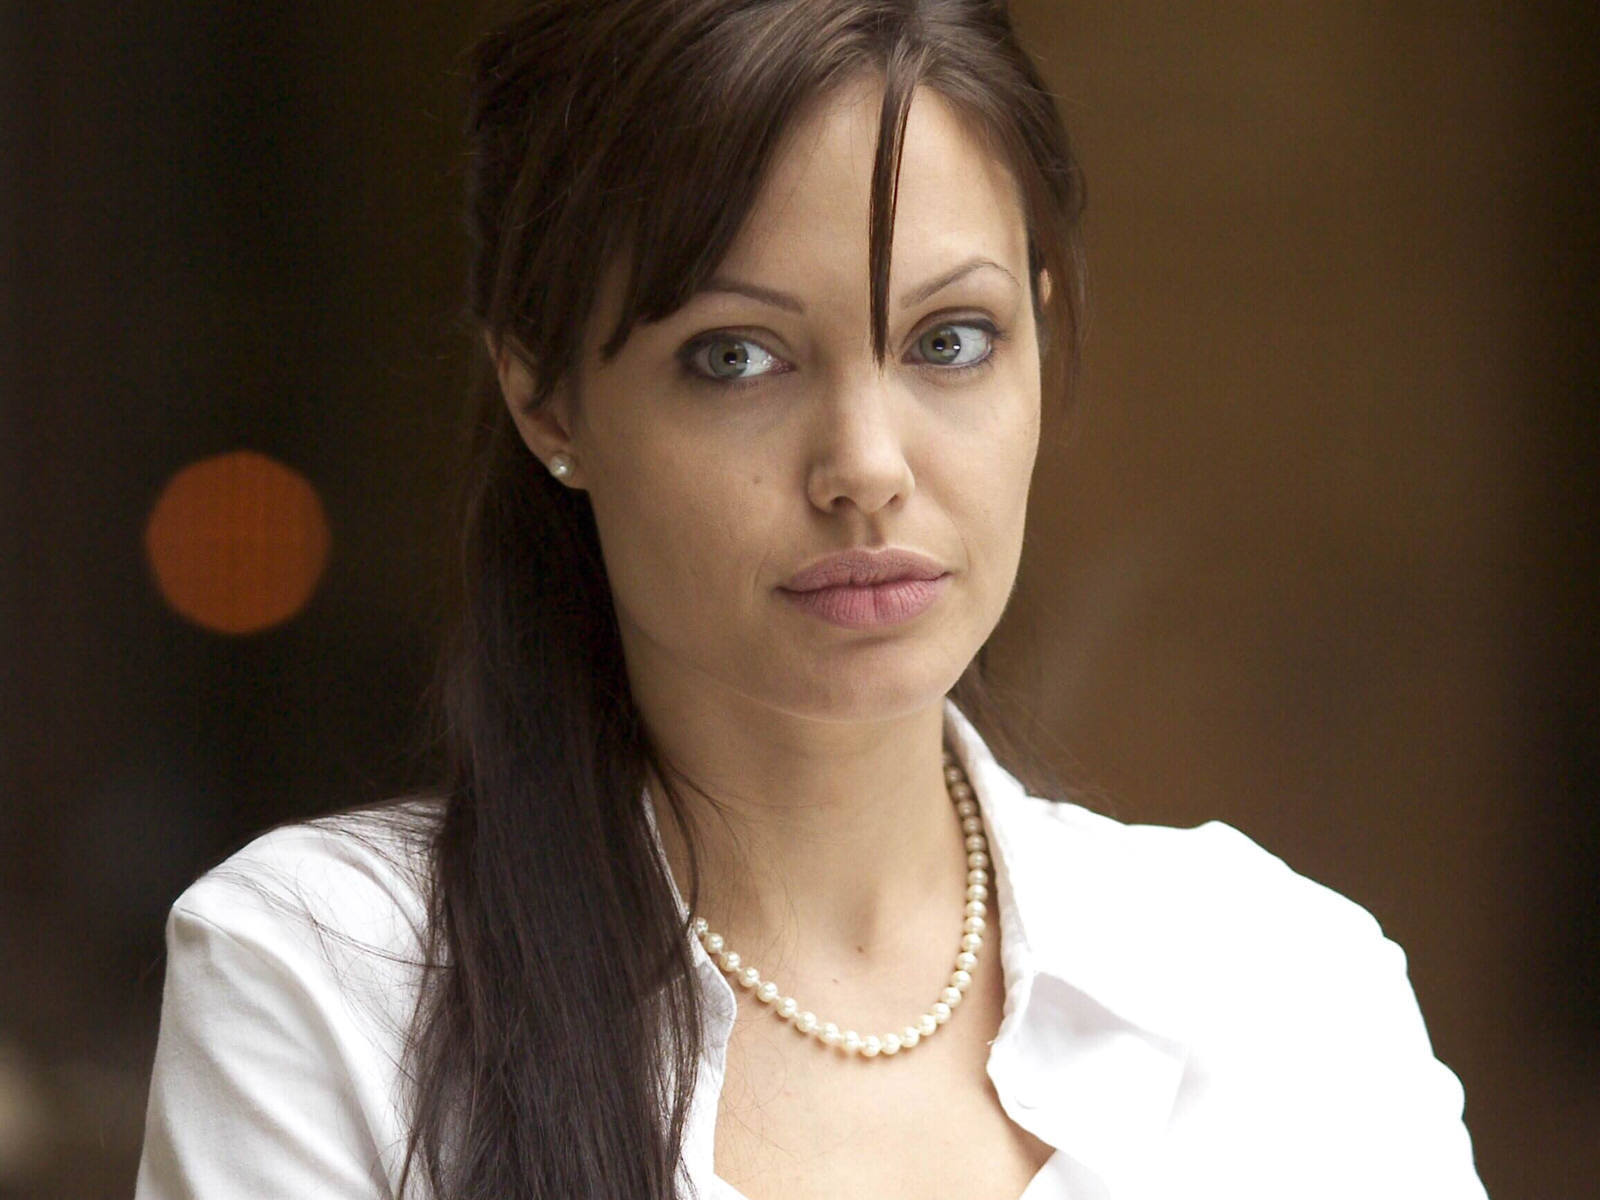 hd classic wallpapers: angelina jolie wallpapers